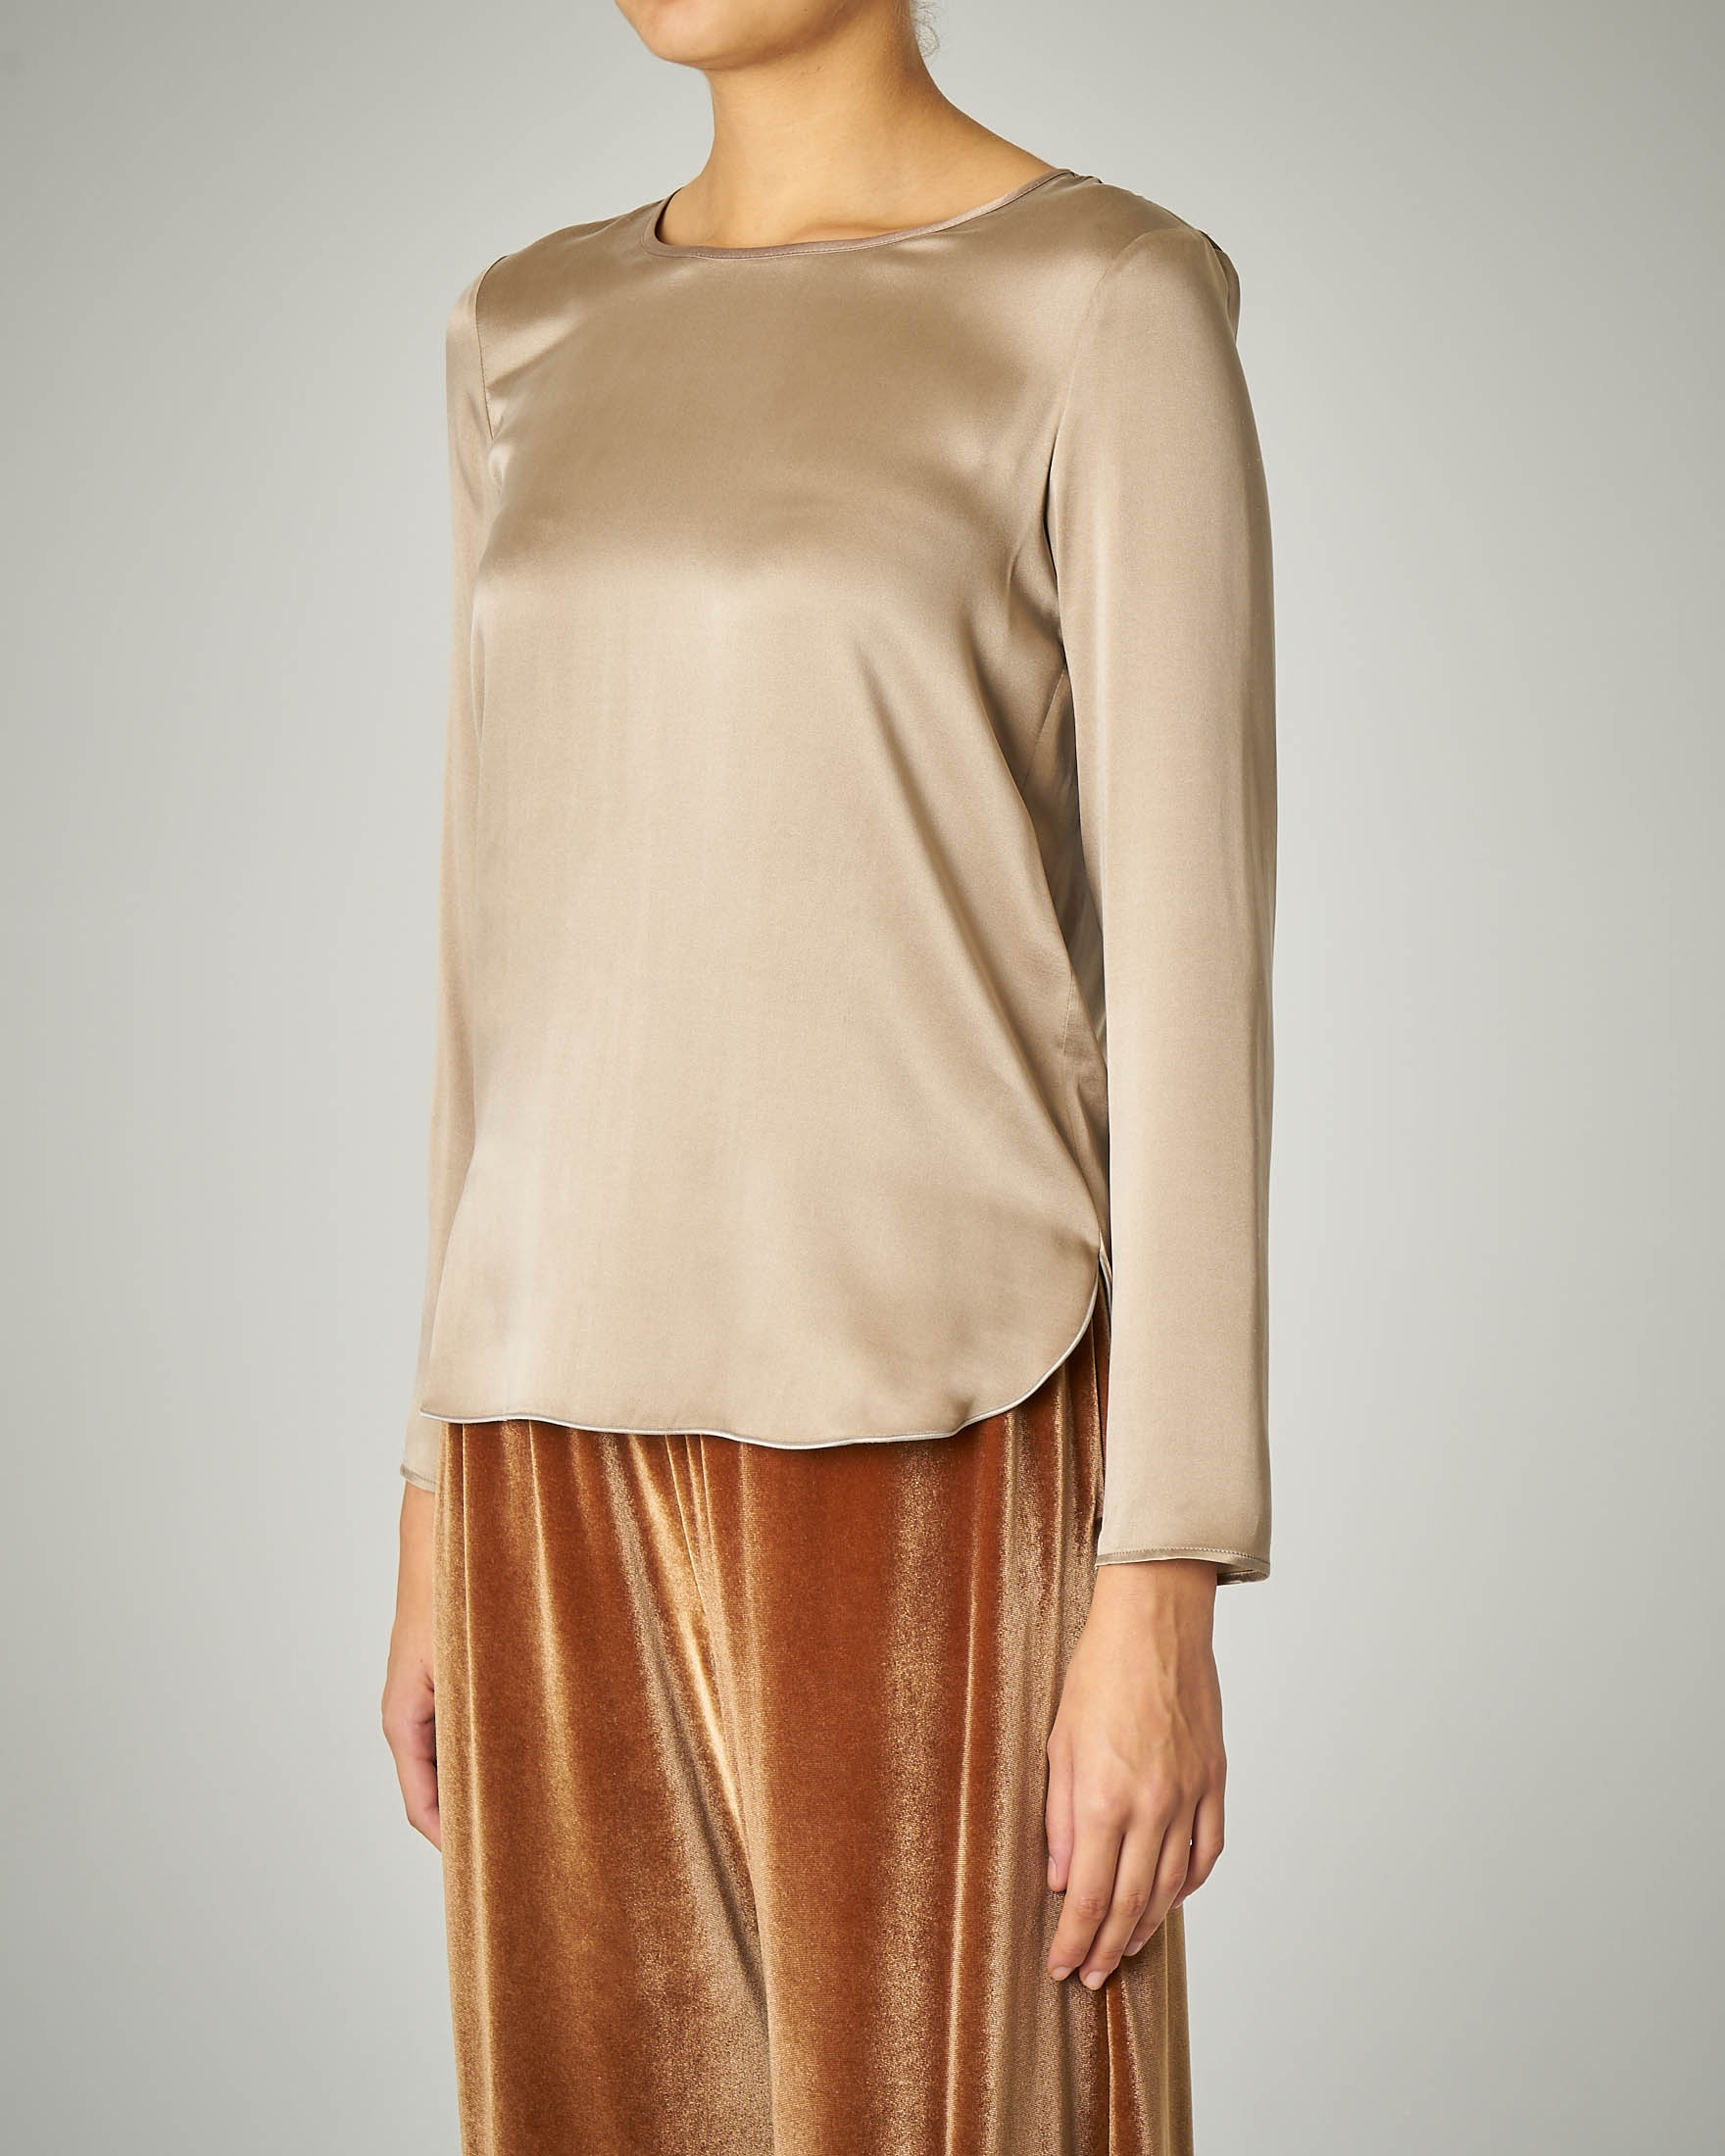 Blusa in crêpe di seta color beige